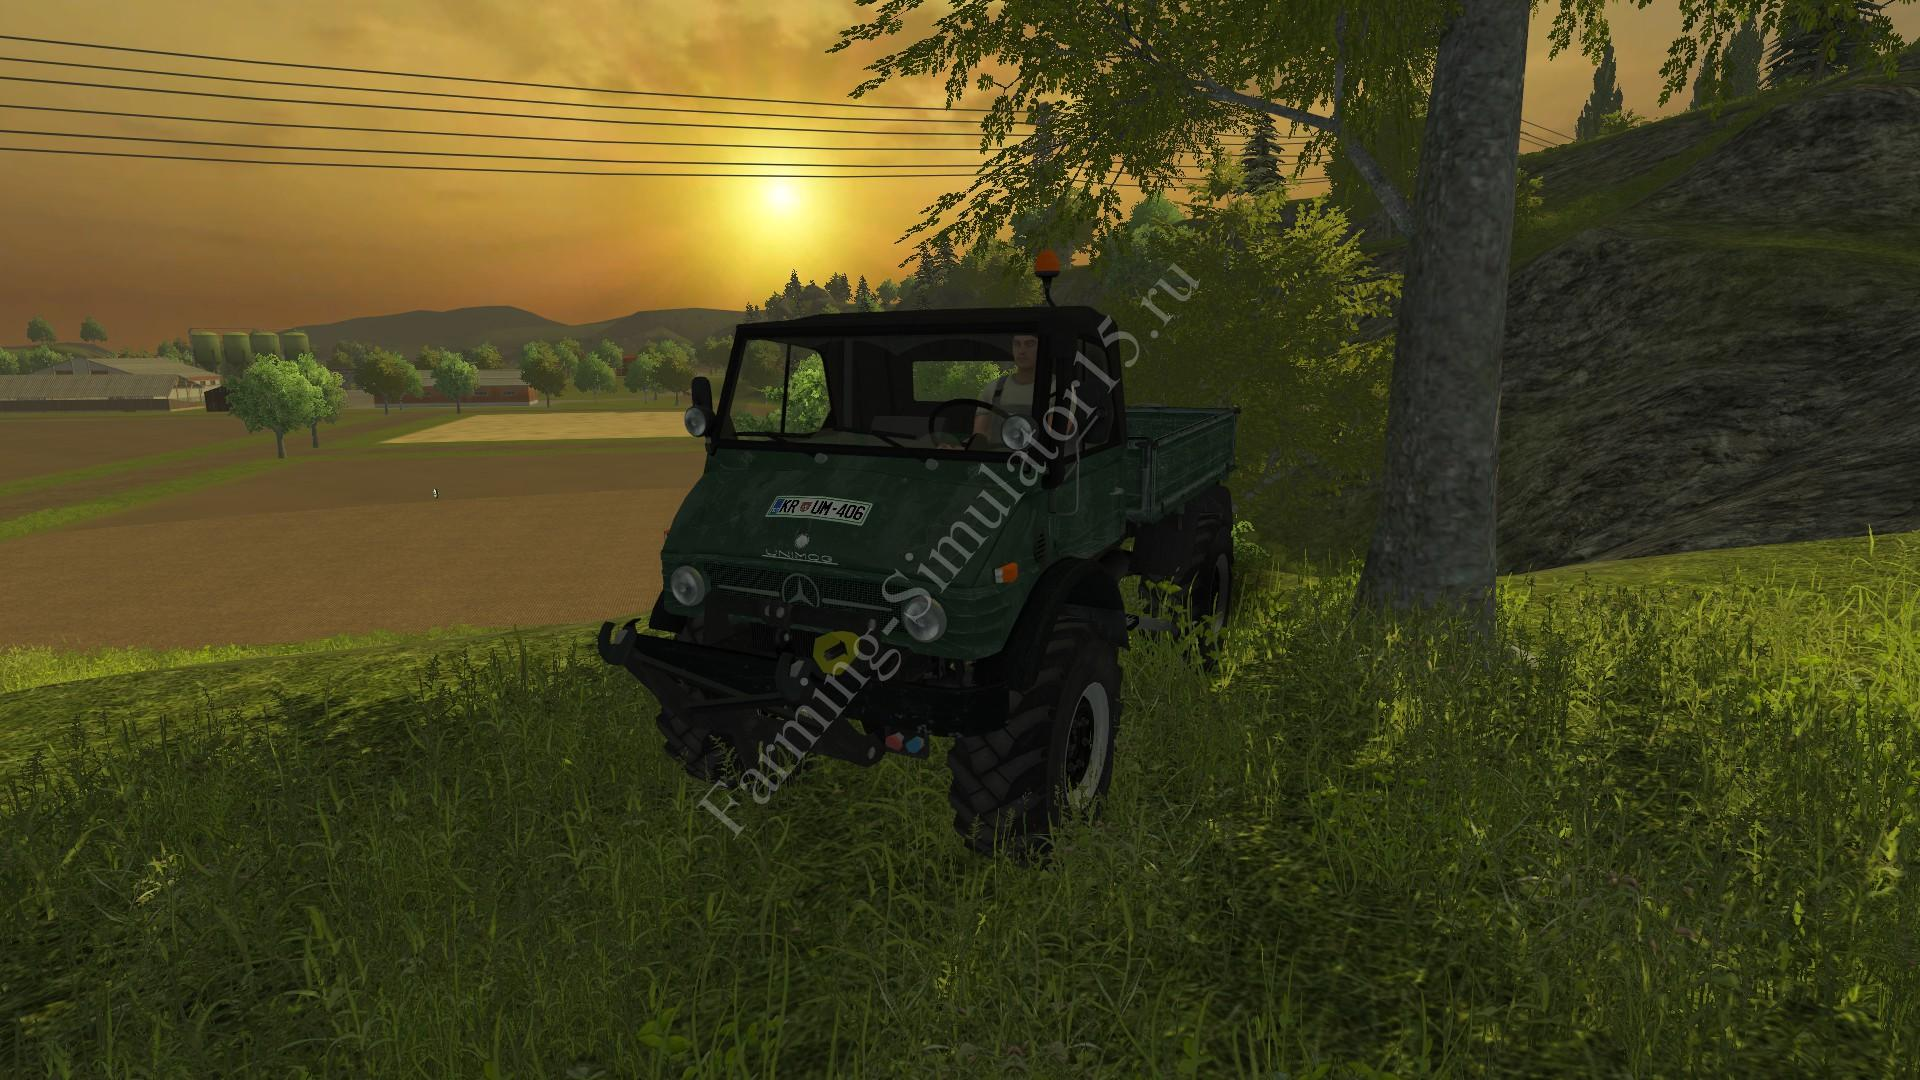 Мод грузовика Unimog U 84 406 series construction v 2.1.2 Forst More Realistic Farming Simulator 2013, Farming Simulator 13